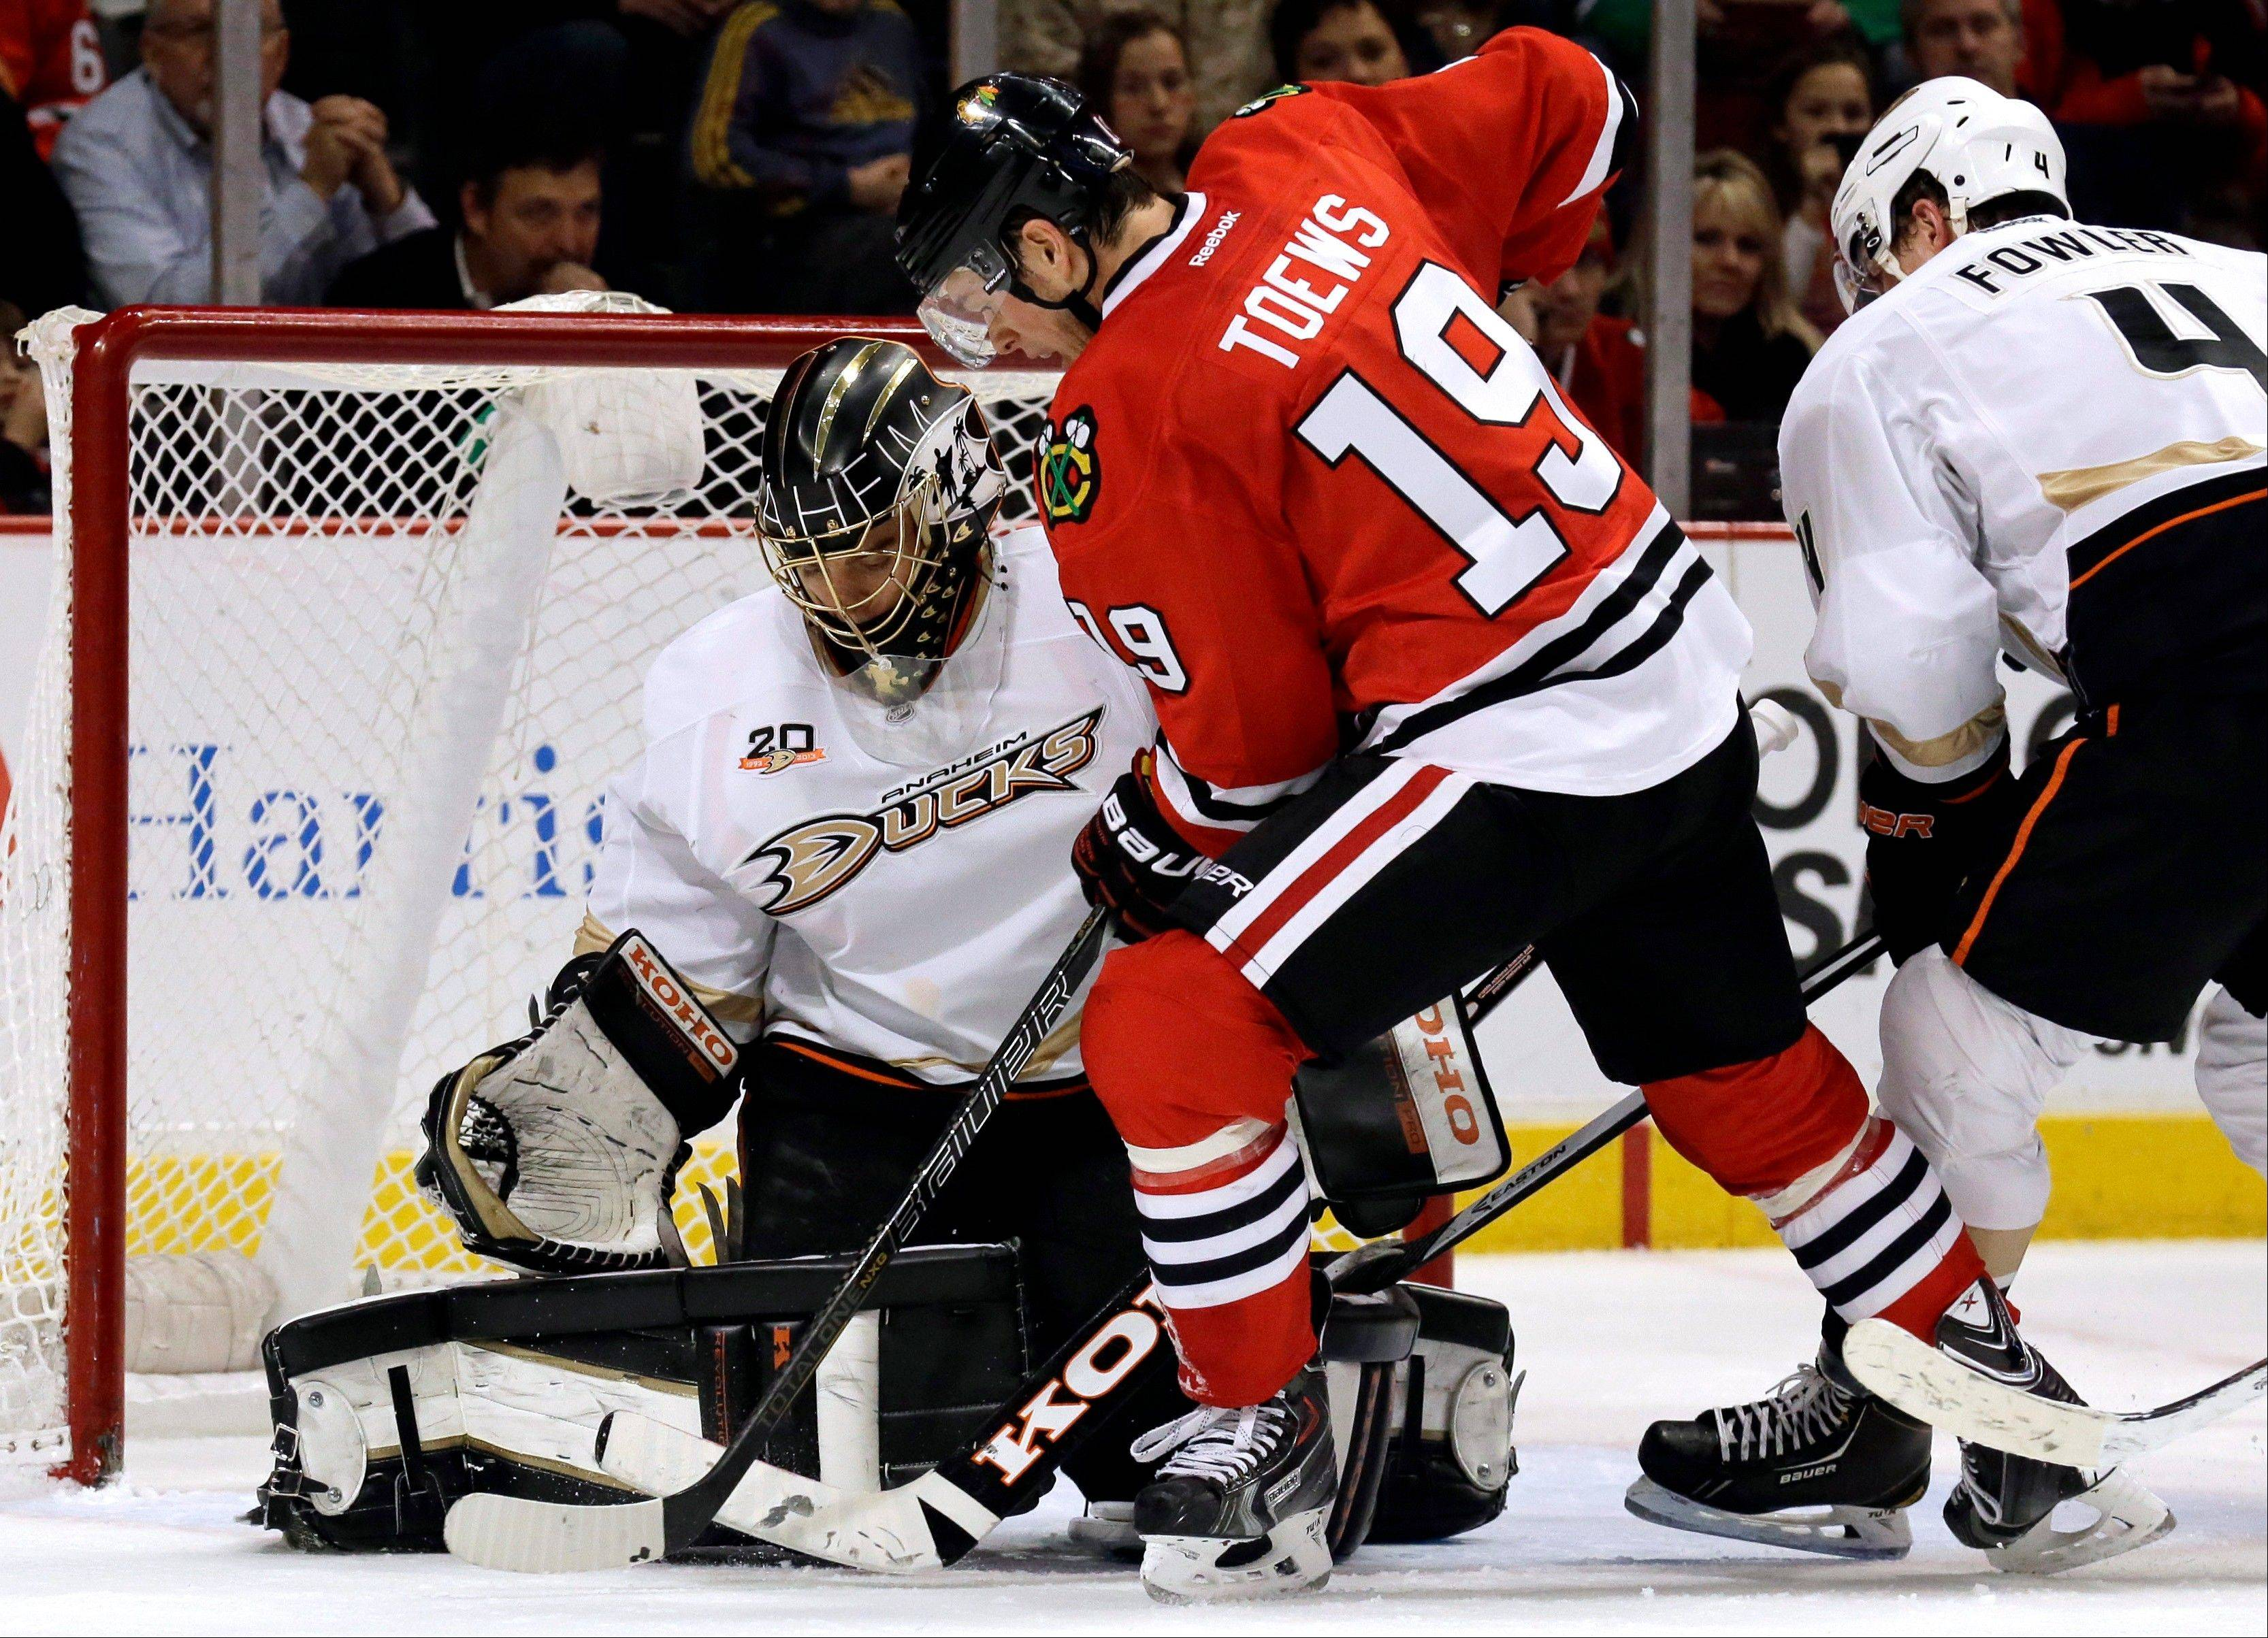 Just ducky! Hawks end Anaheim's 8-game winning streak